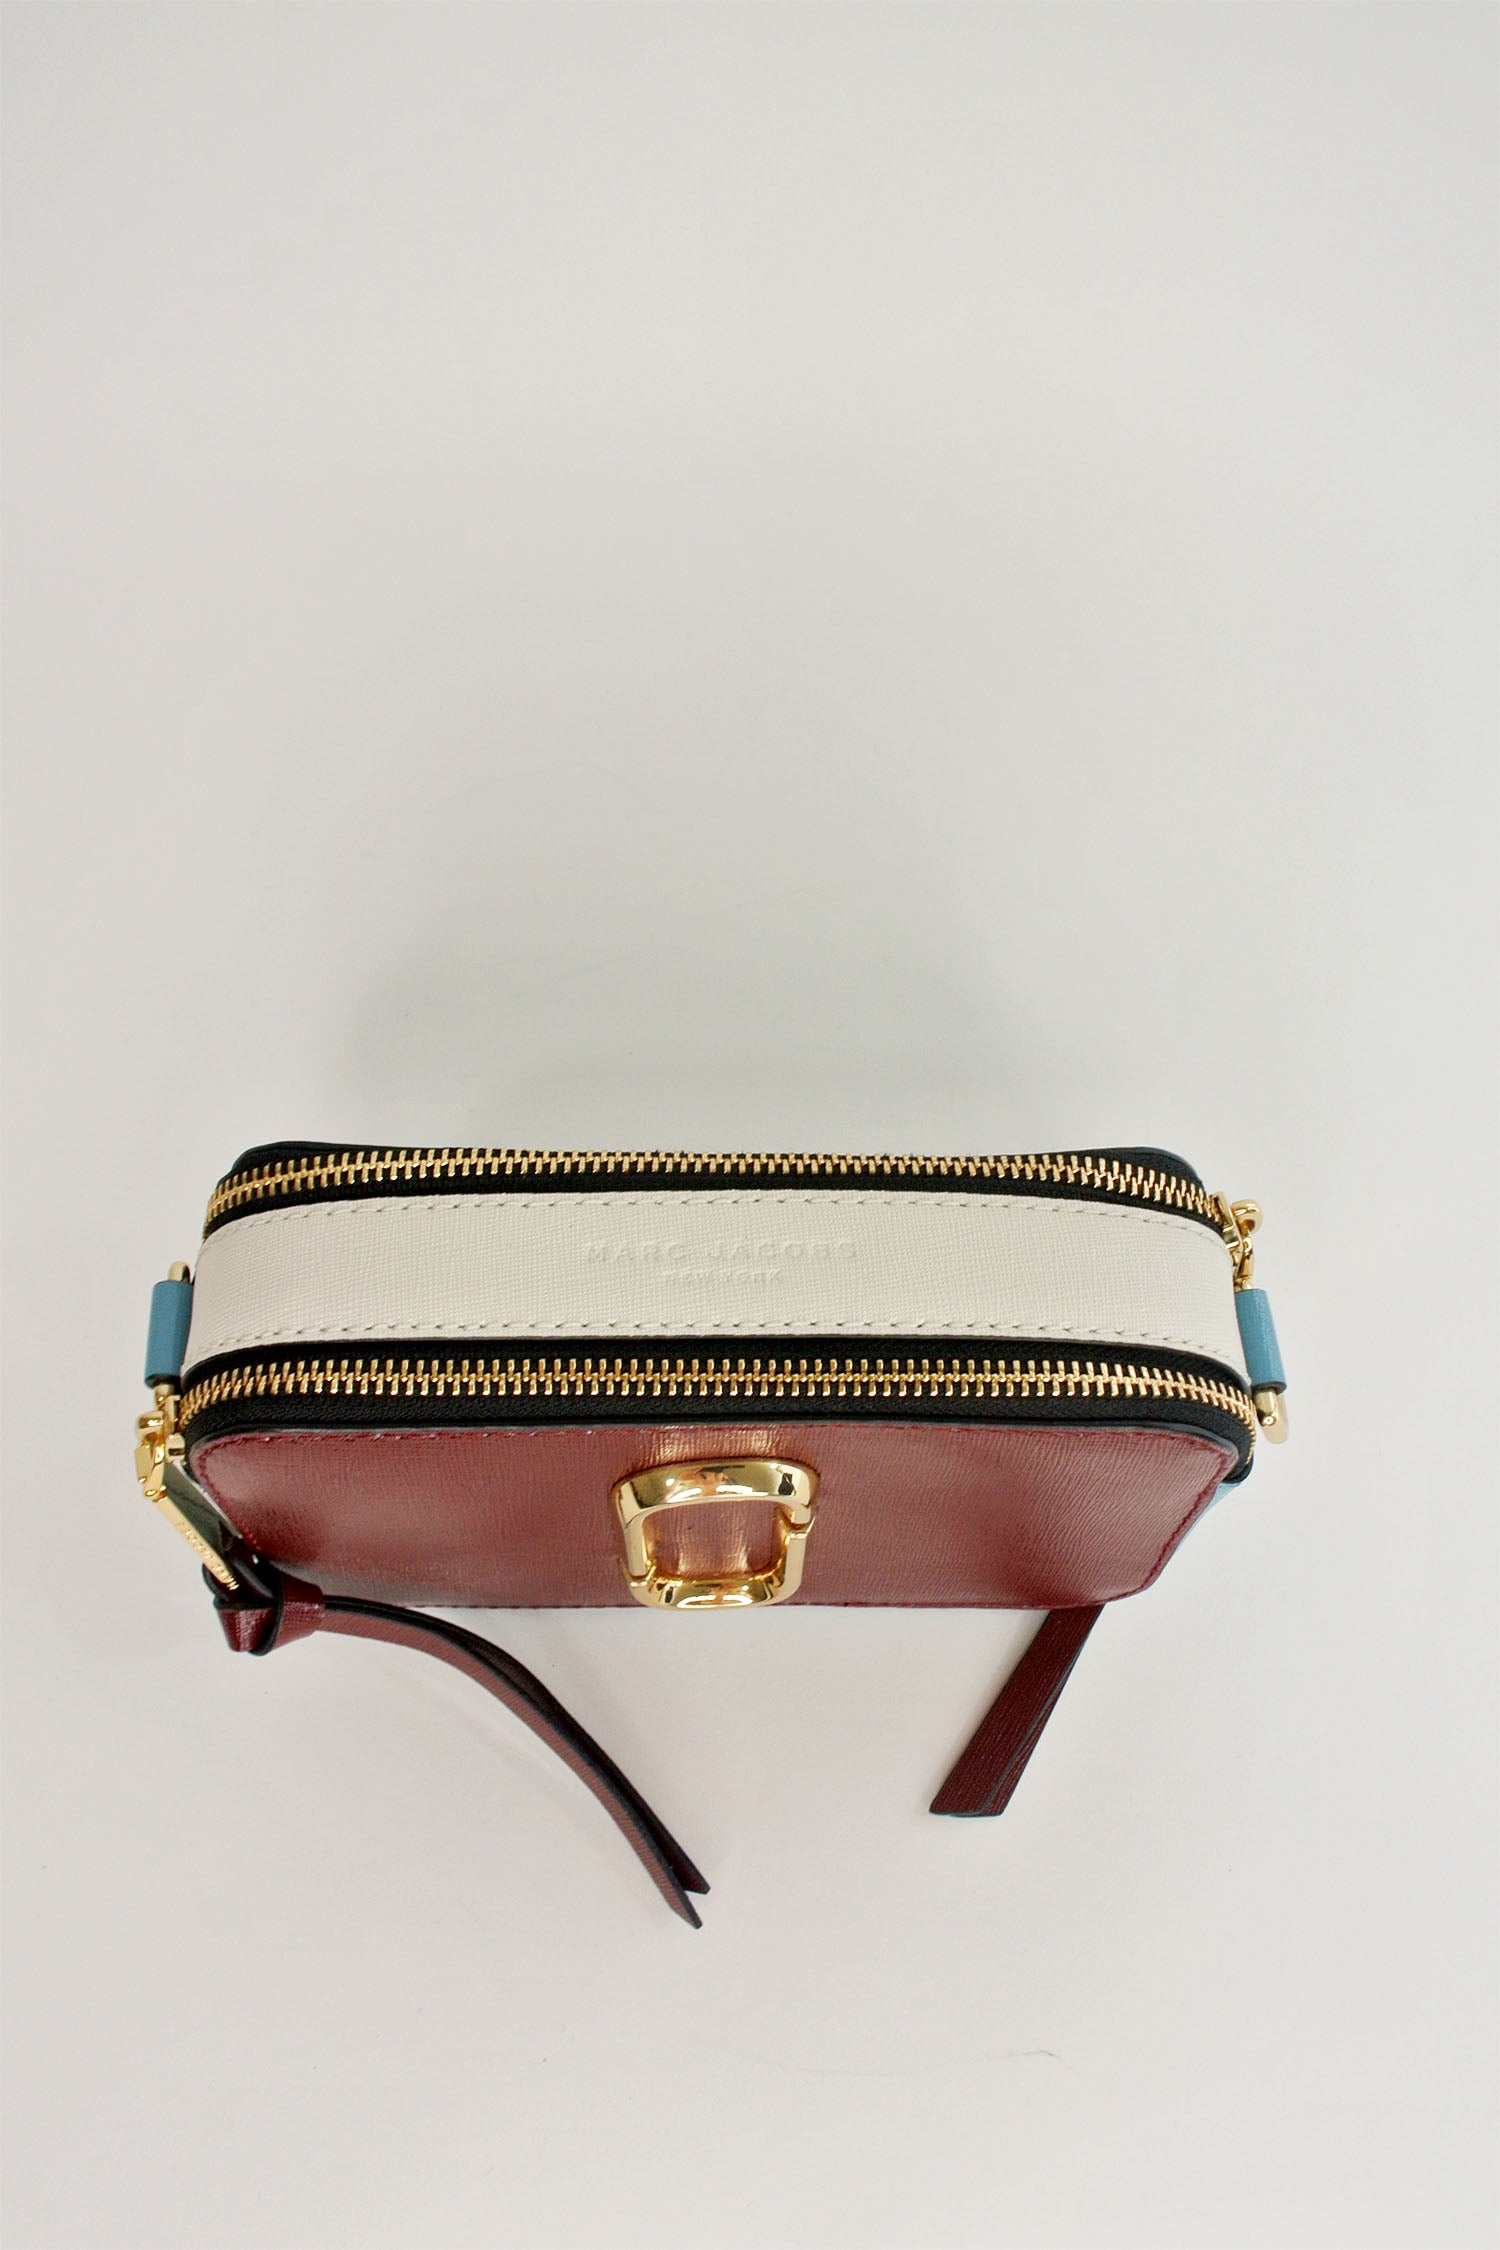 Marc Jacobs Snapshot Star Crossbody Bag